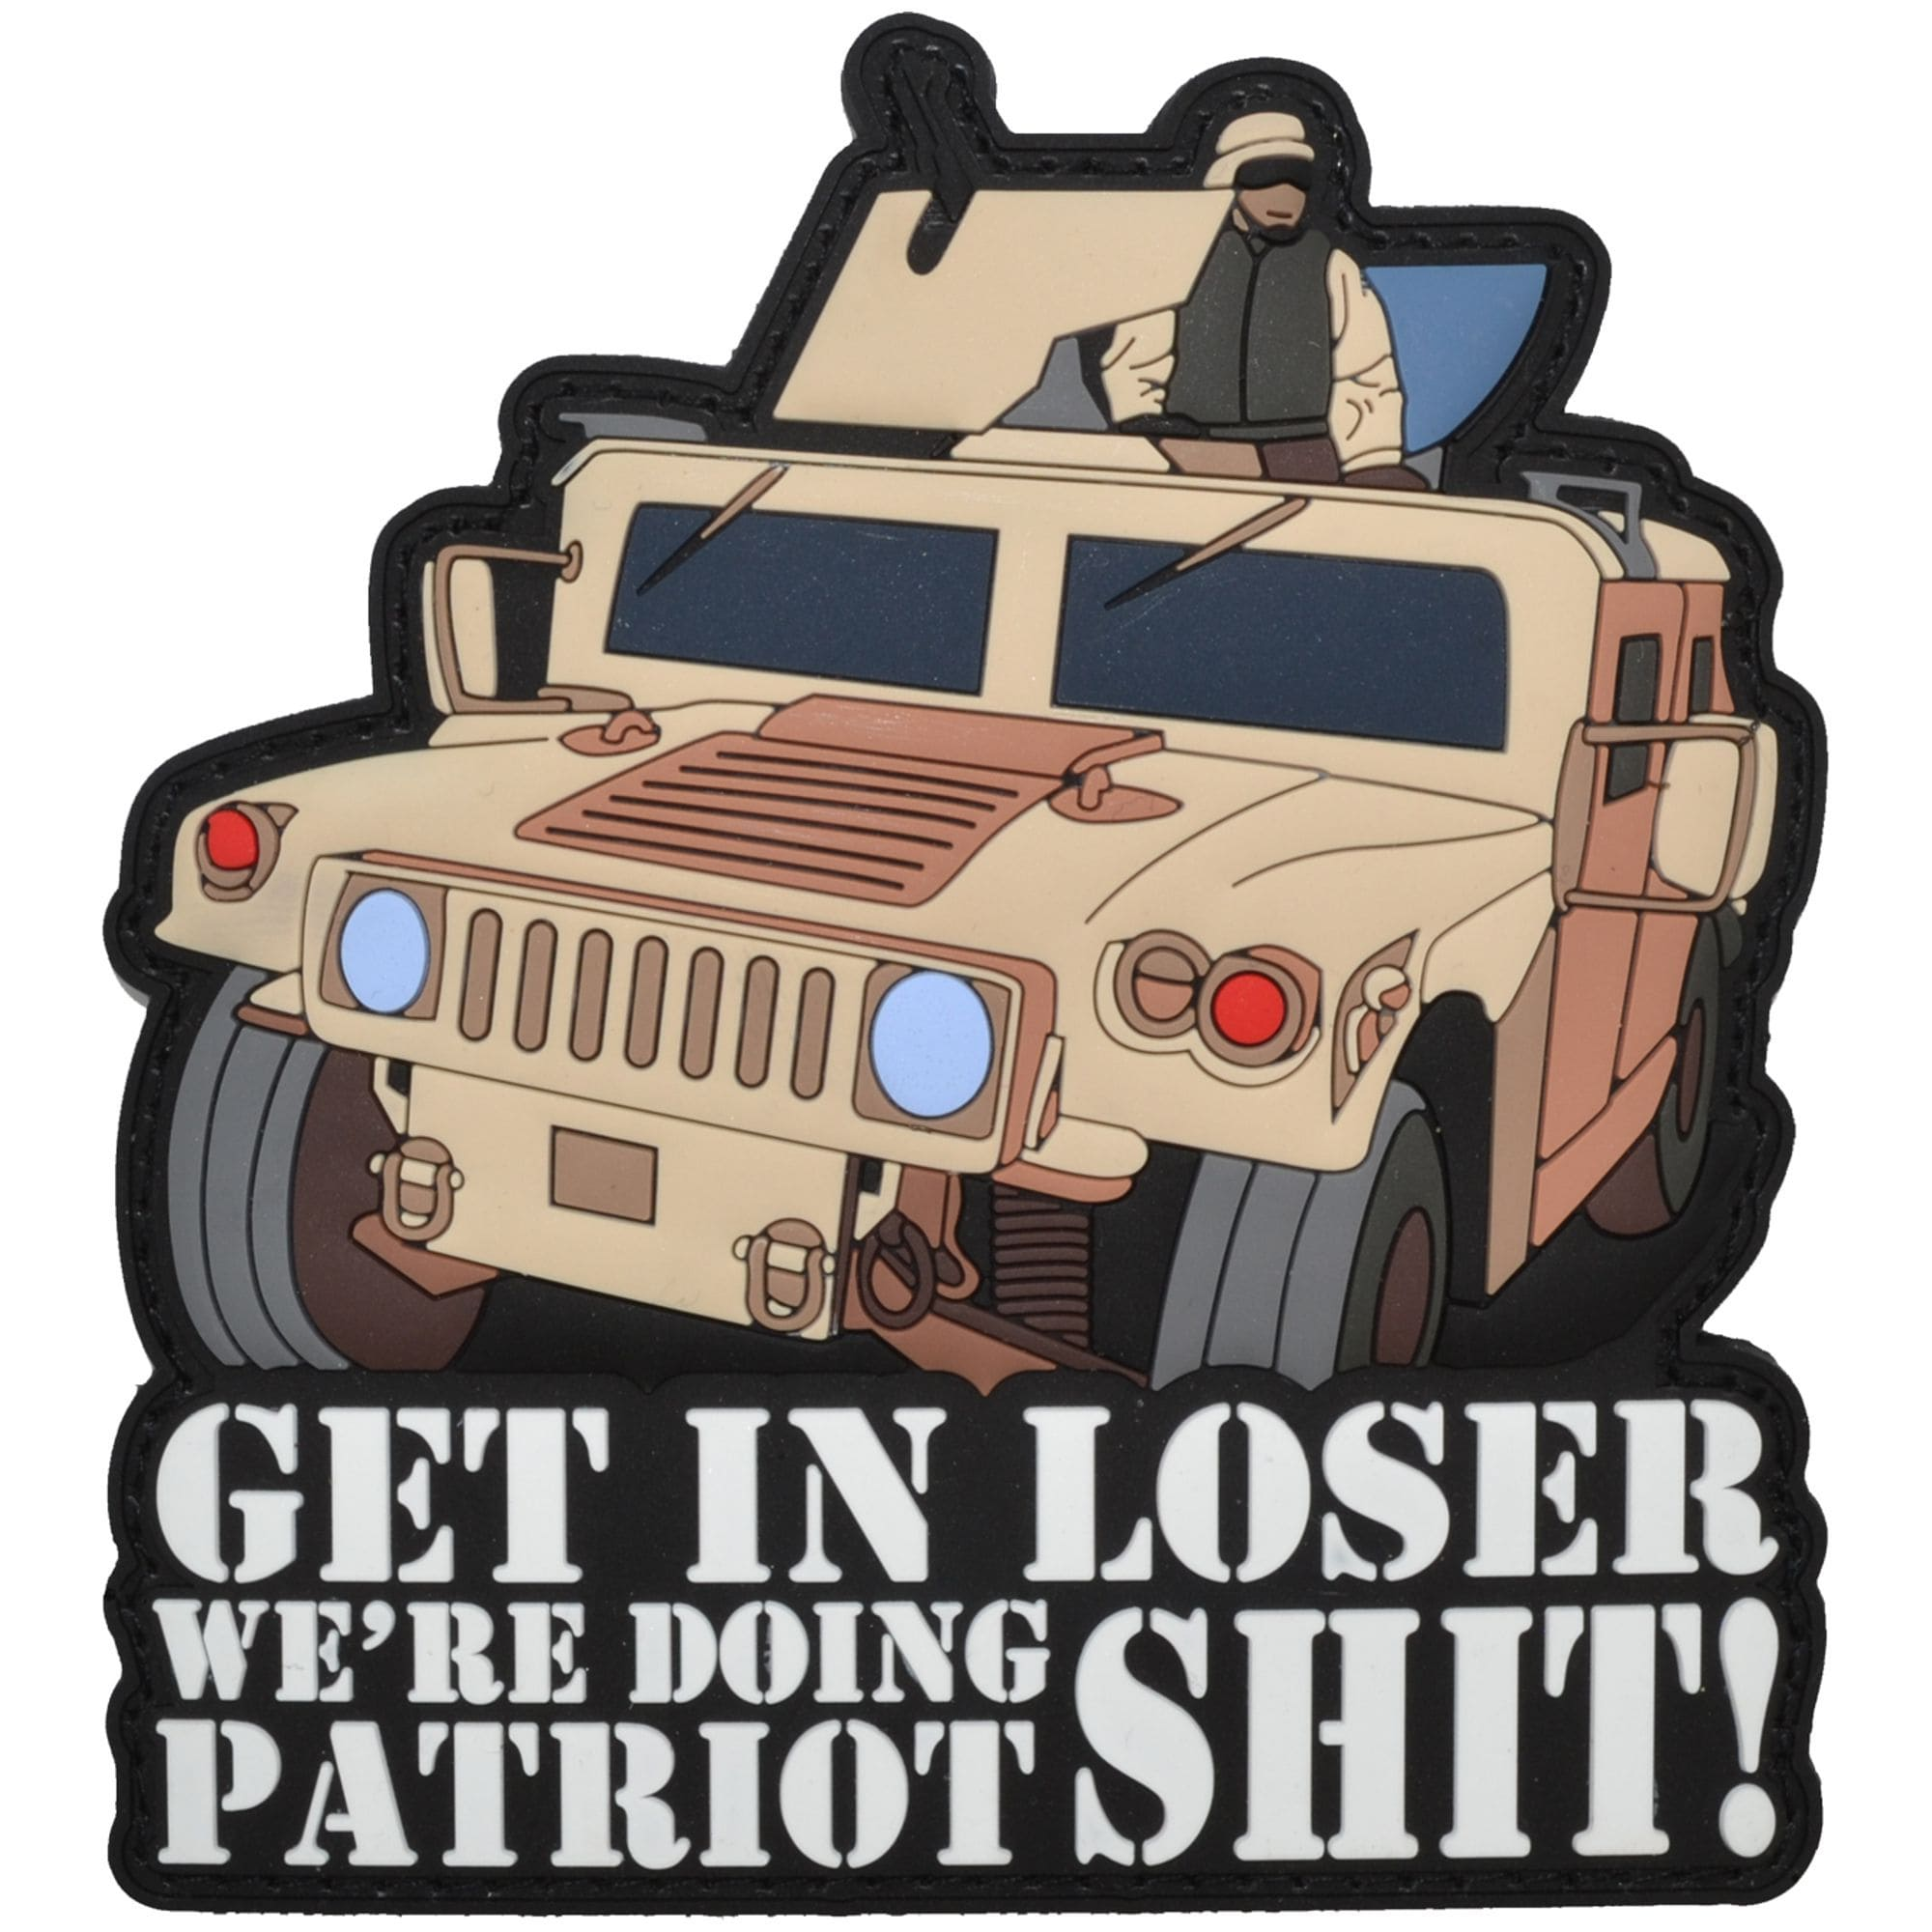 Get In Loser We're Doing Patriot Shit - 3.5x4 inch PVC Patch